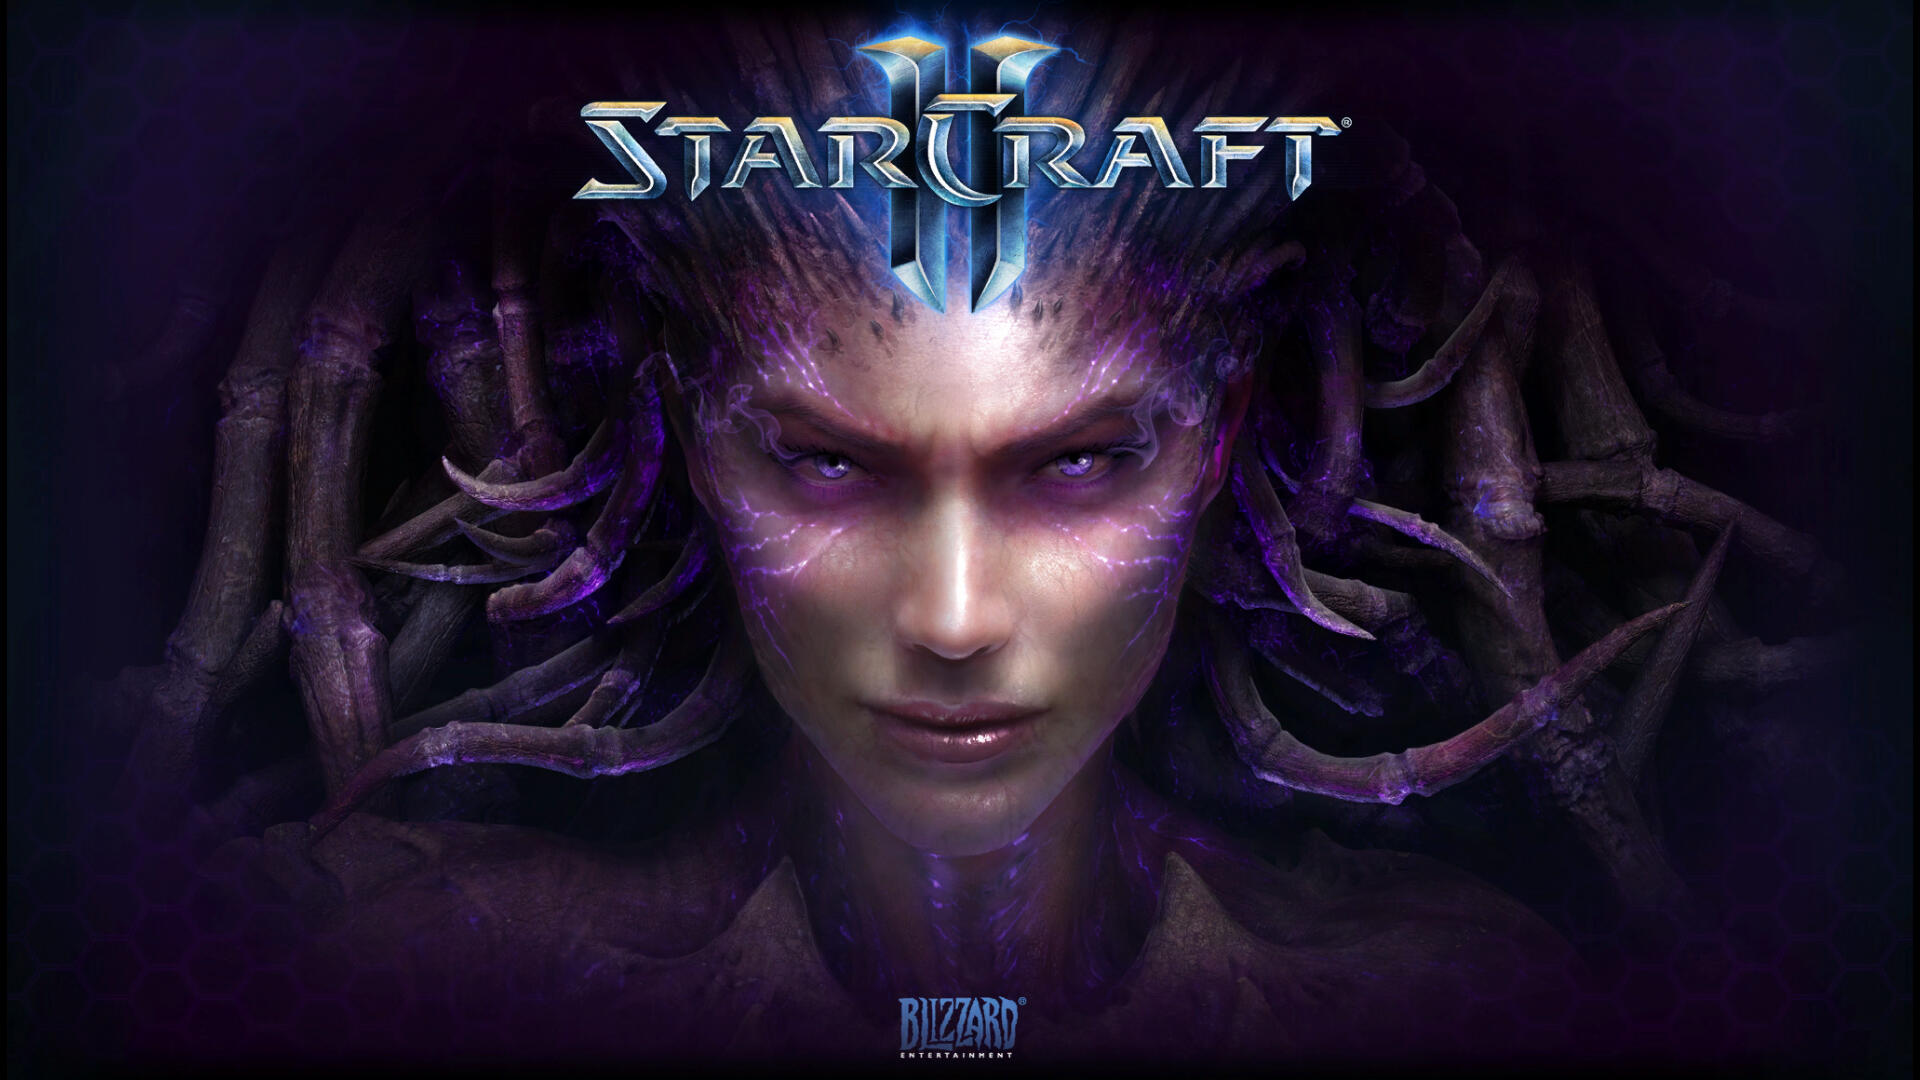 Blizzard Makes Fun of Star Wars Battlefront 2 on Twitter While Announcing Free-to-play StarCraft 2